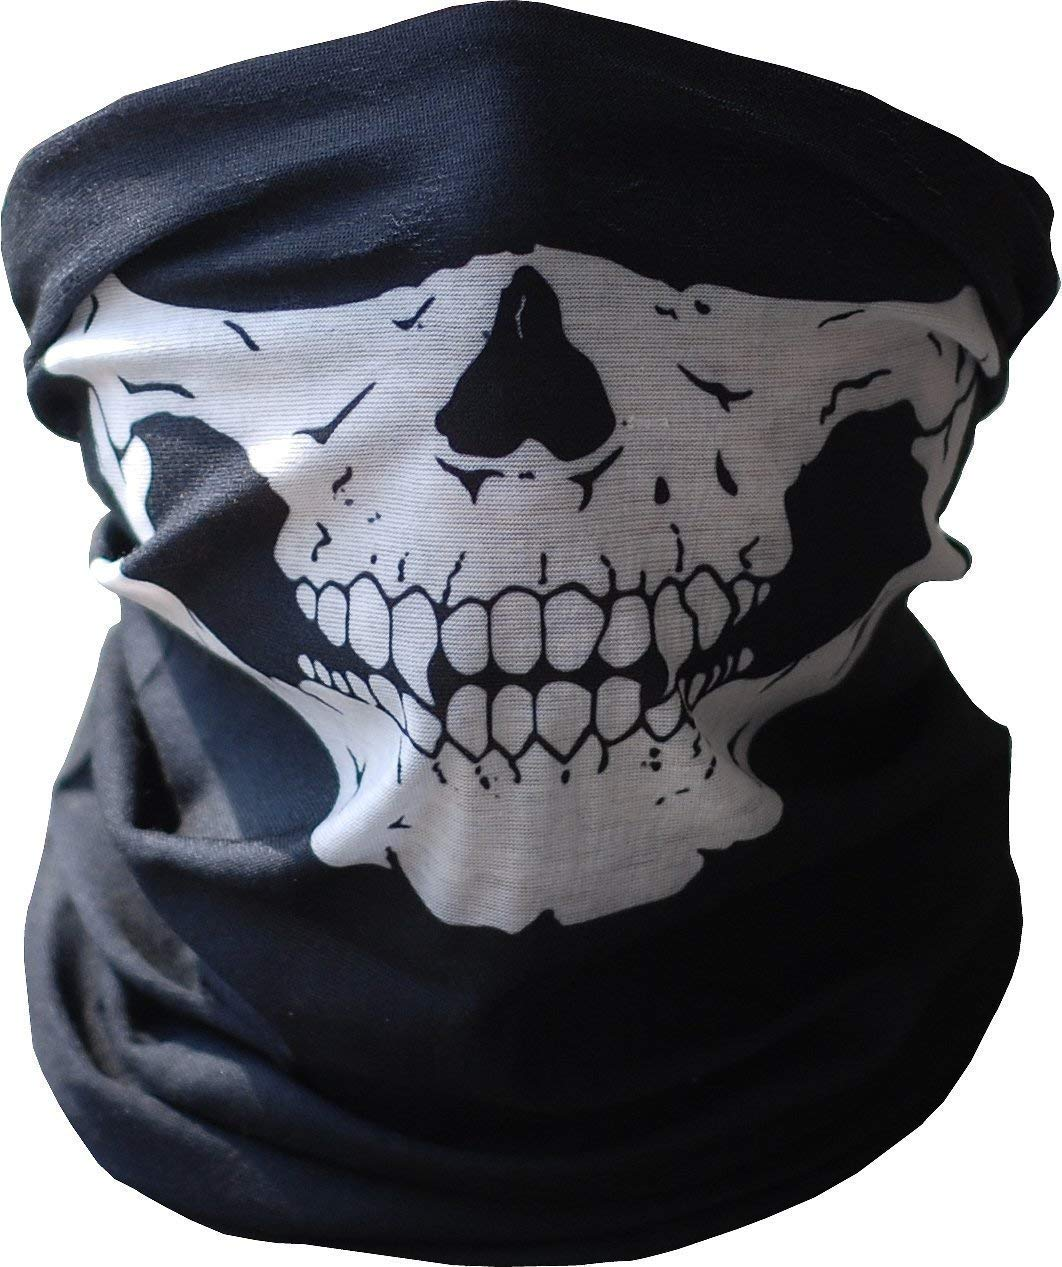 Multifunctional Outdoor Face Mask, Seamless Headwear Protective Bandana Skeleton Face Shield For Fishing/Hunting/Camping/Hiking/Sports 3